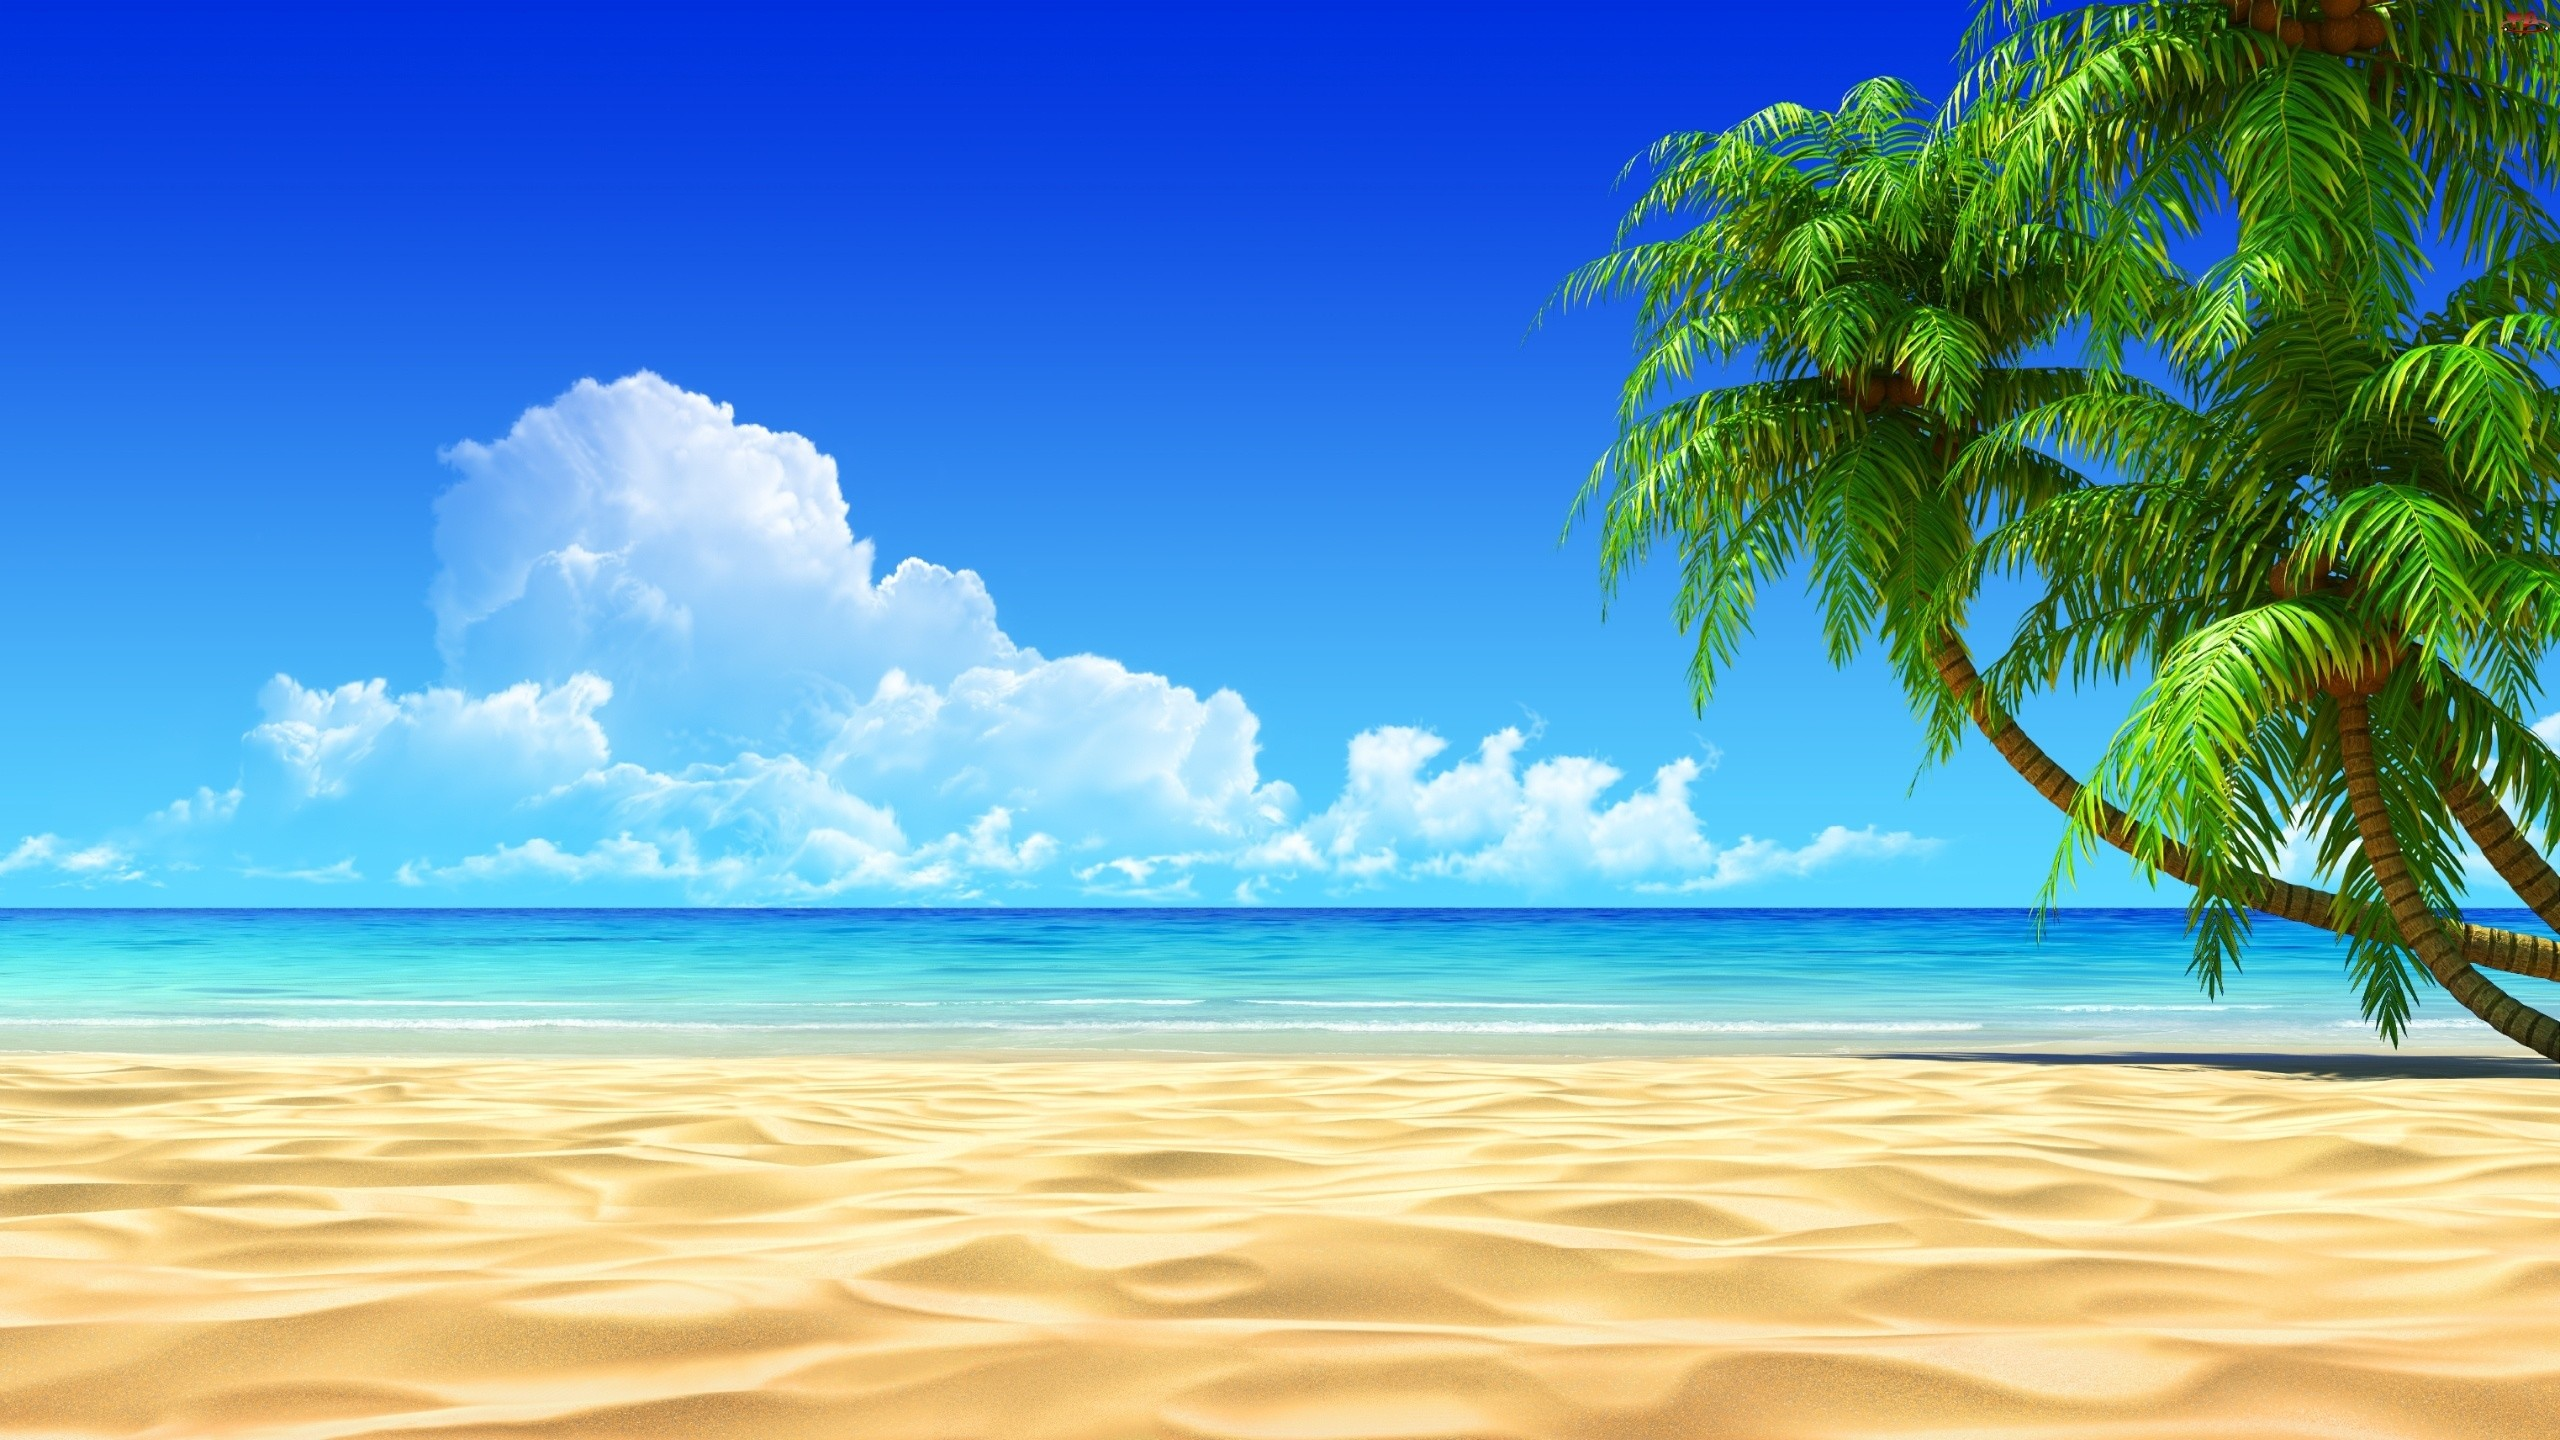 2560x1440 Beach-Desktop-Background.jpg